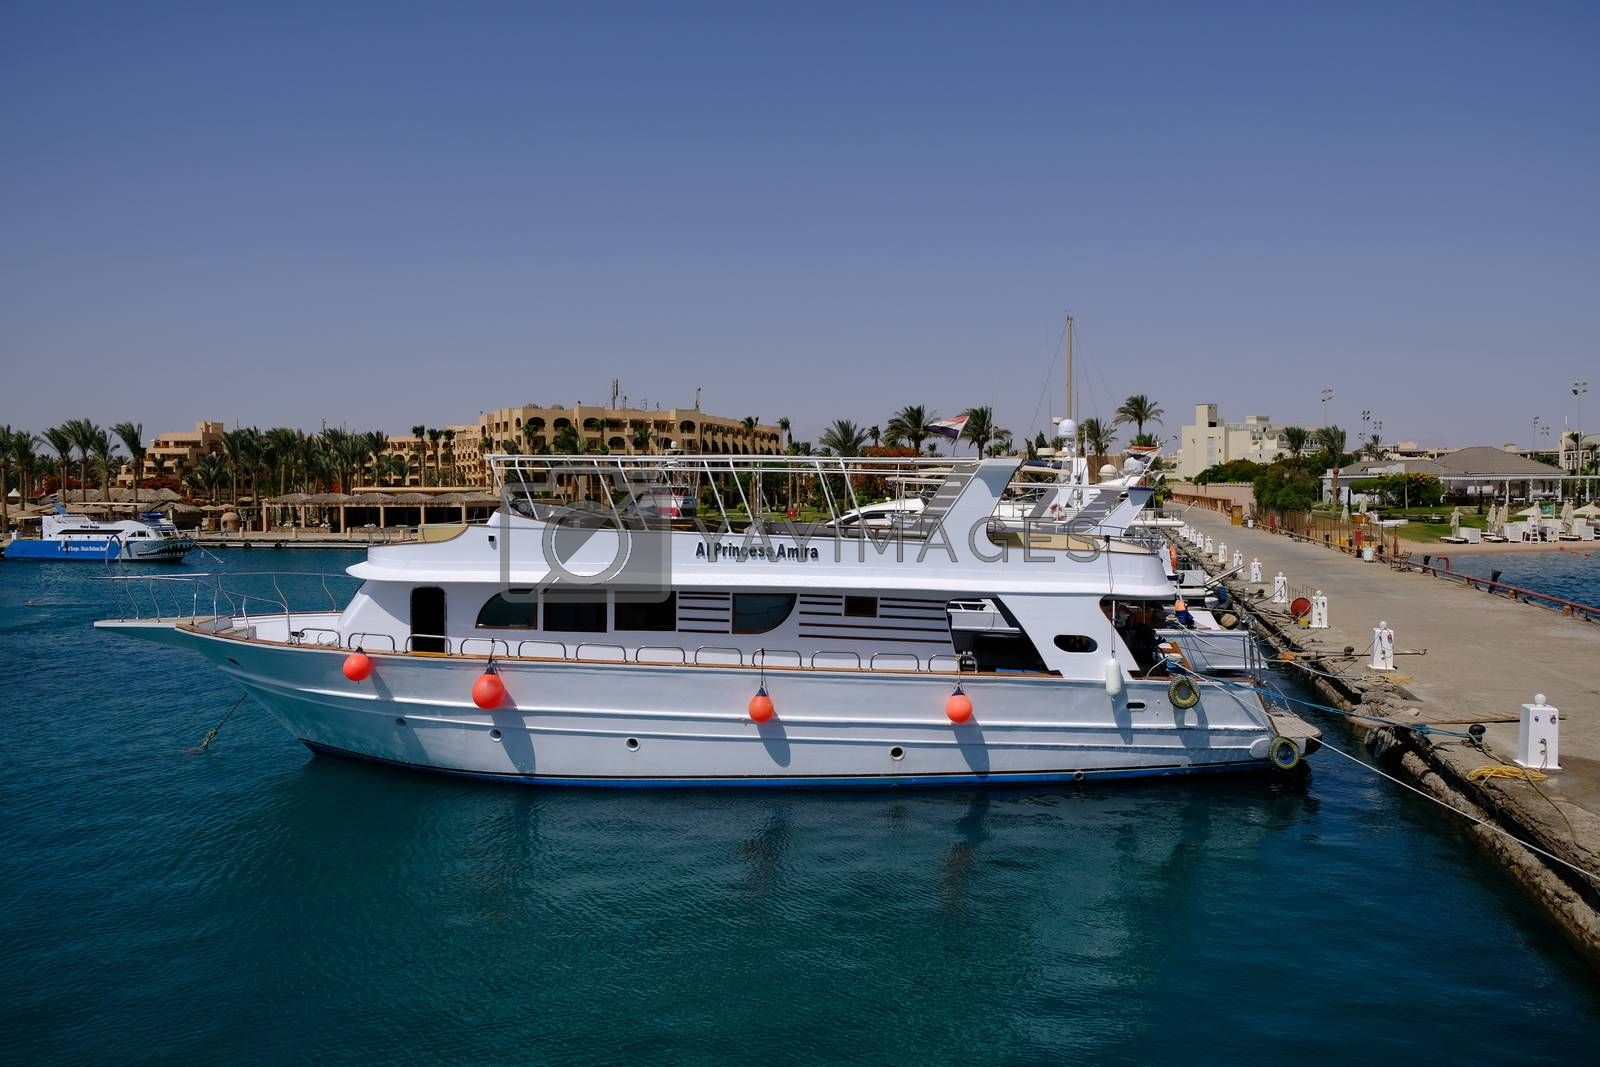 Hurghada / Egypt - May, 2019: Yachts and tourist boats in the Hurghada Marina in Hurghada, popular beach resort town along Red Sea coast of Egypt